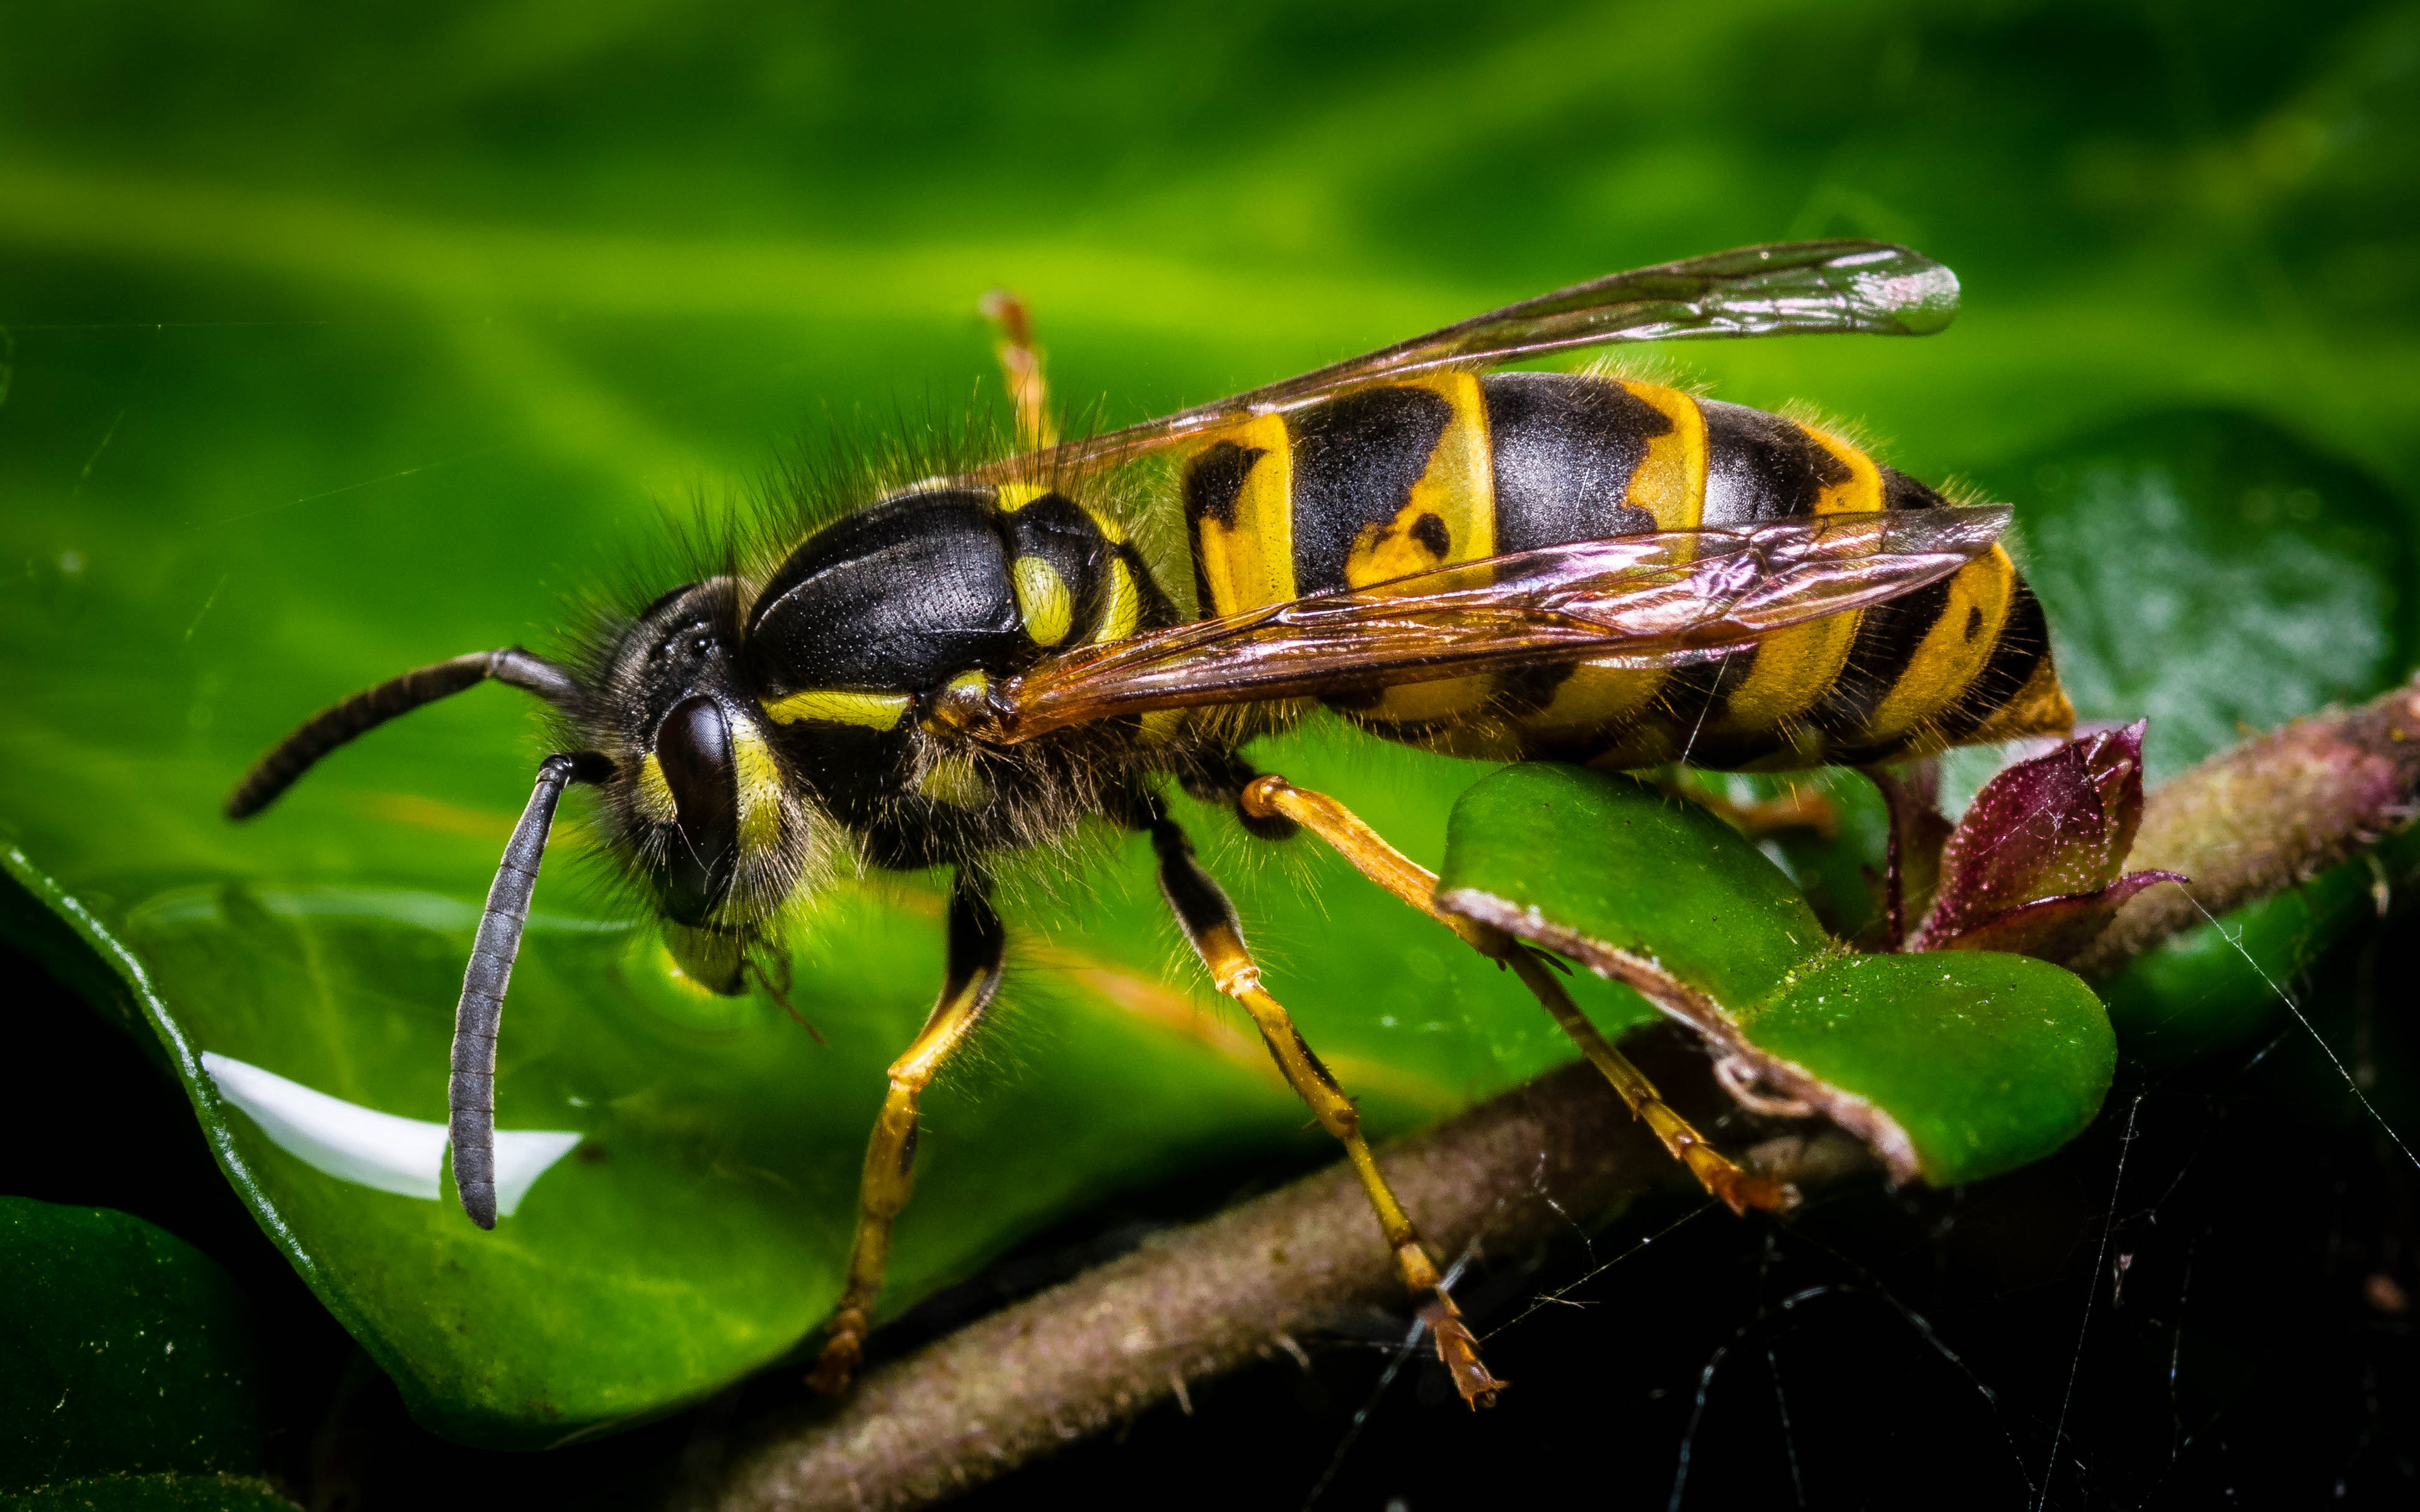 Wasp Insect Yellow Black Wallpapers For Mobile Phone And